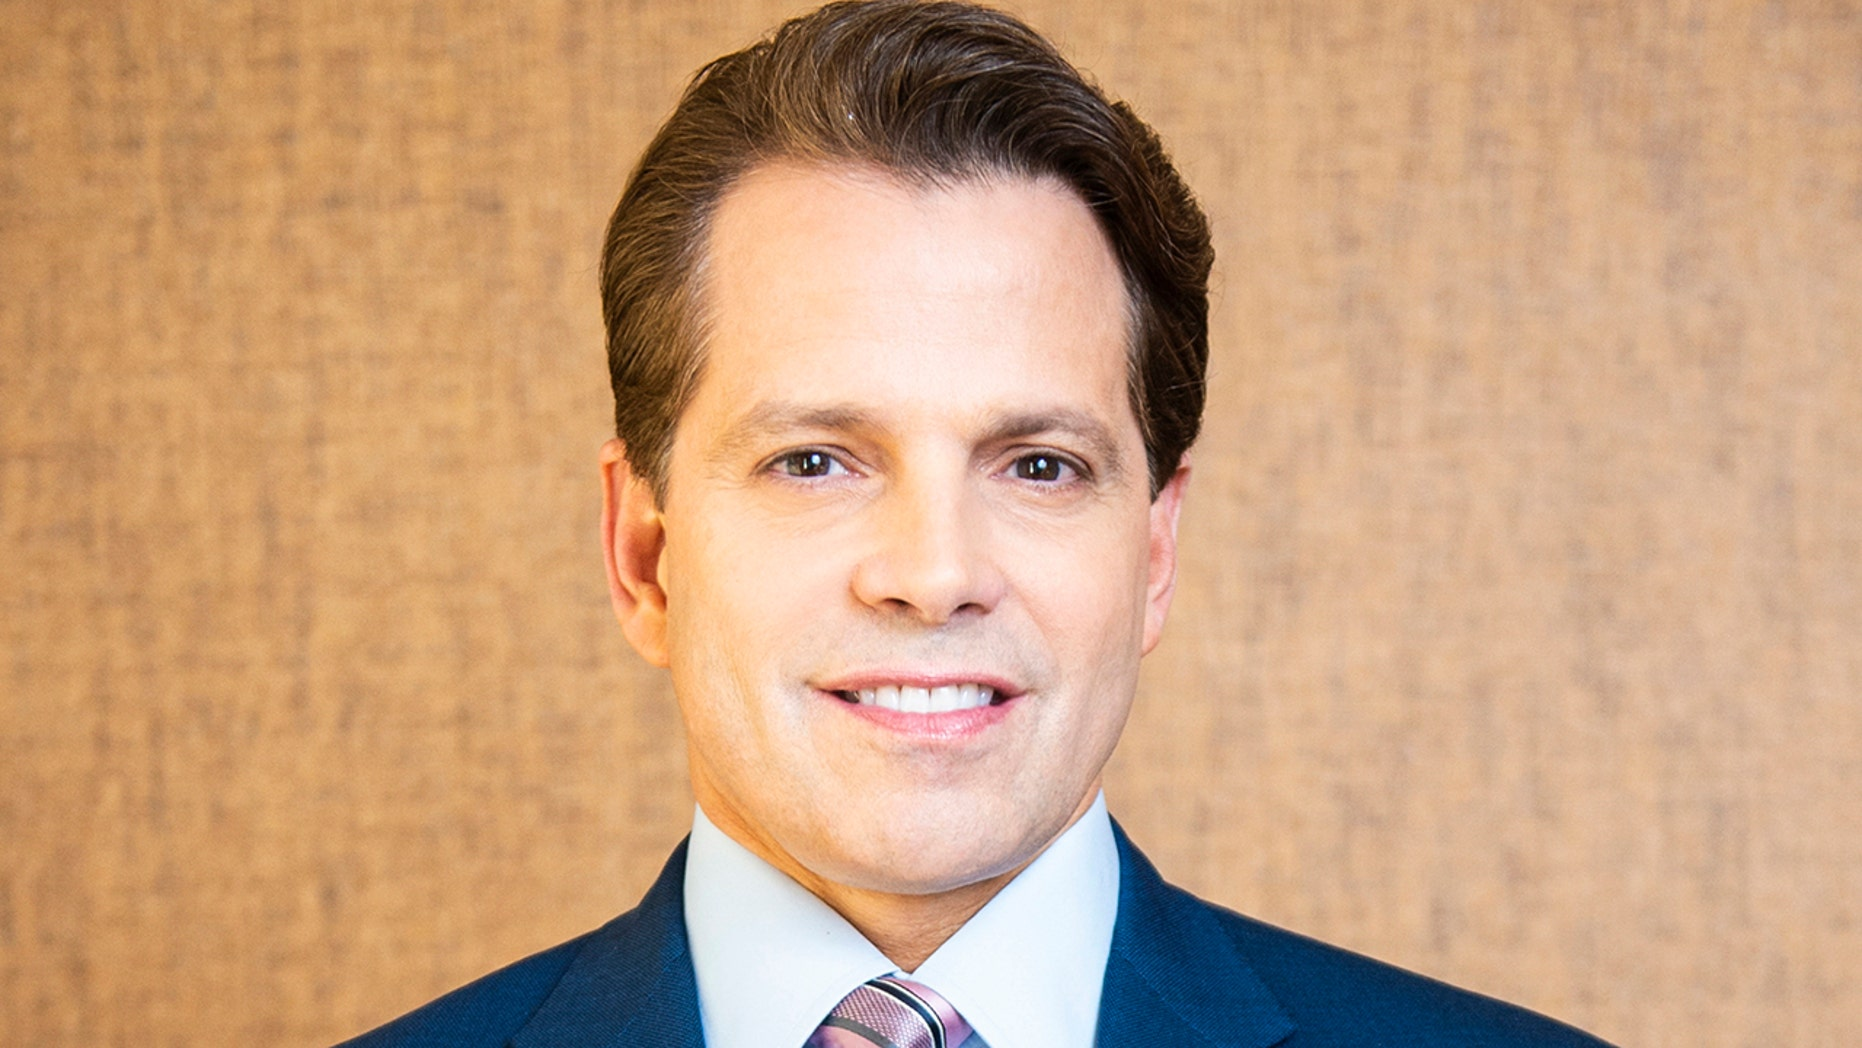 Anthony Scaramucci to participate in the second season of BIG BROTHER: CELEBRITY EDITION. BIG BROTHER: CELEBRITY EDITION launches with a two-night premiere event Monday, Jan. 21.